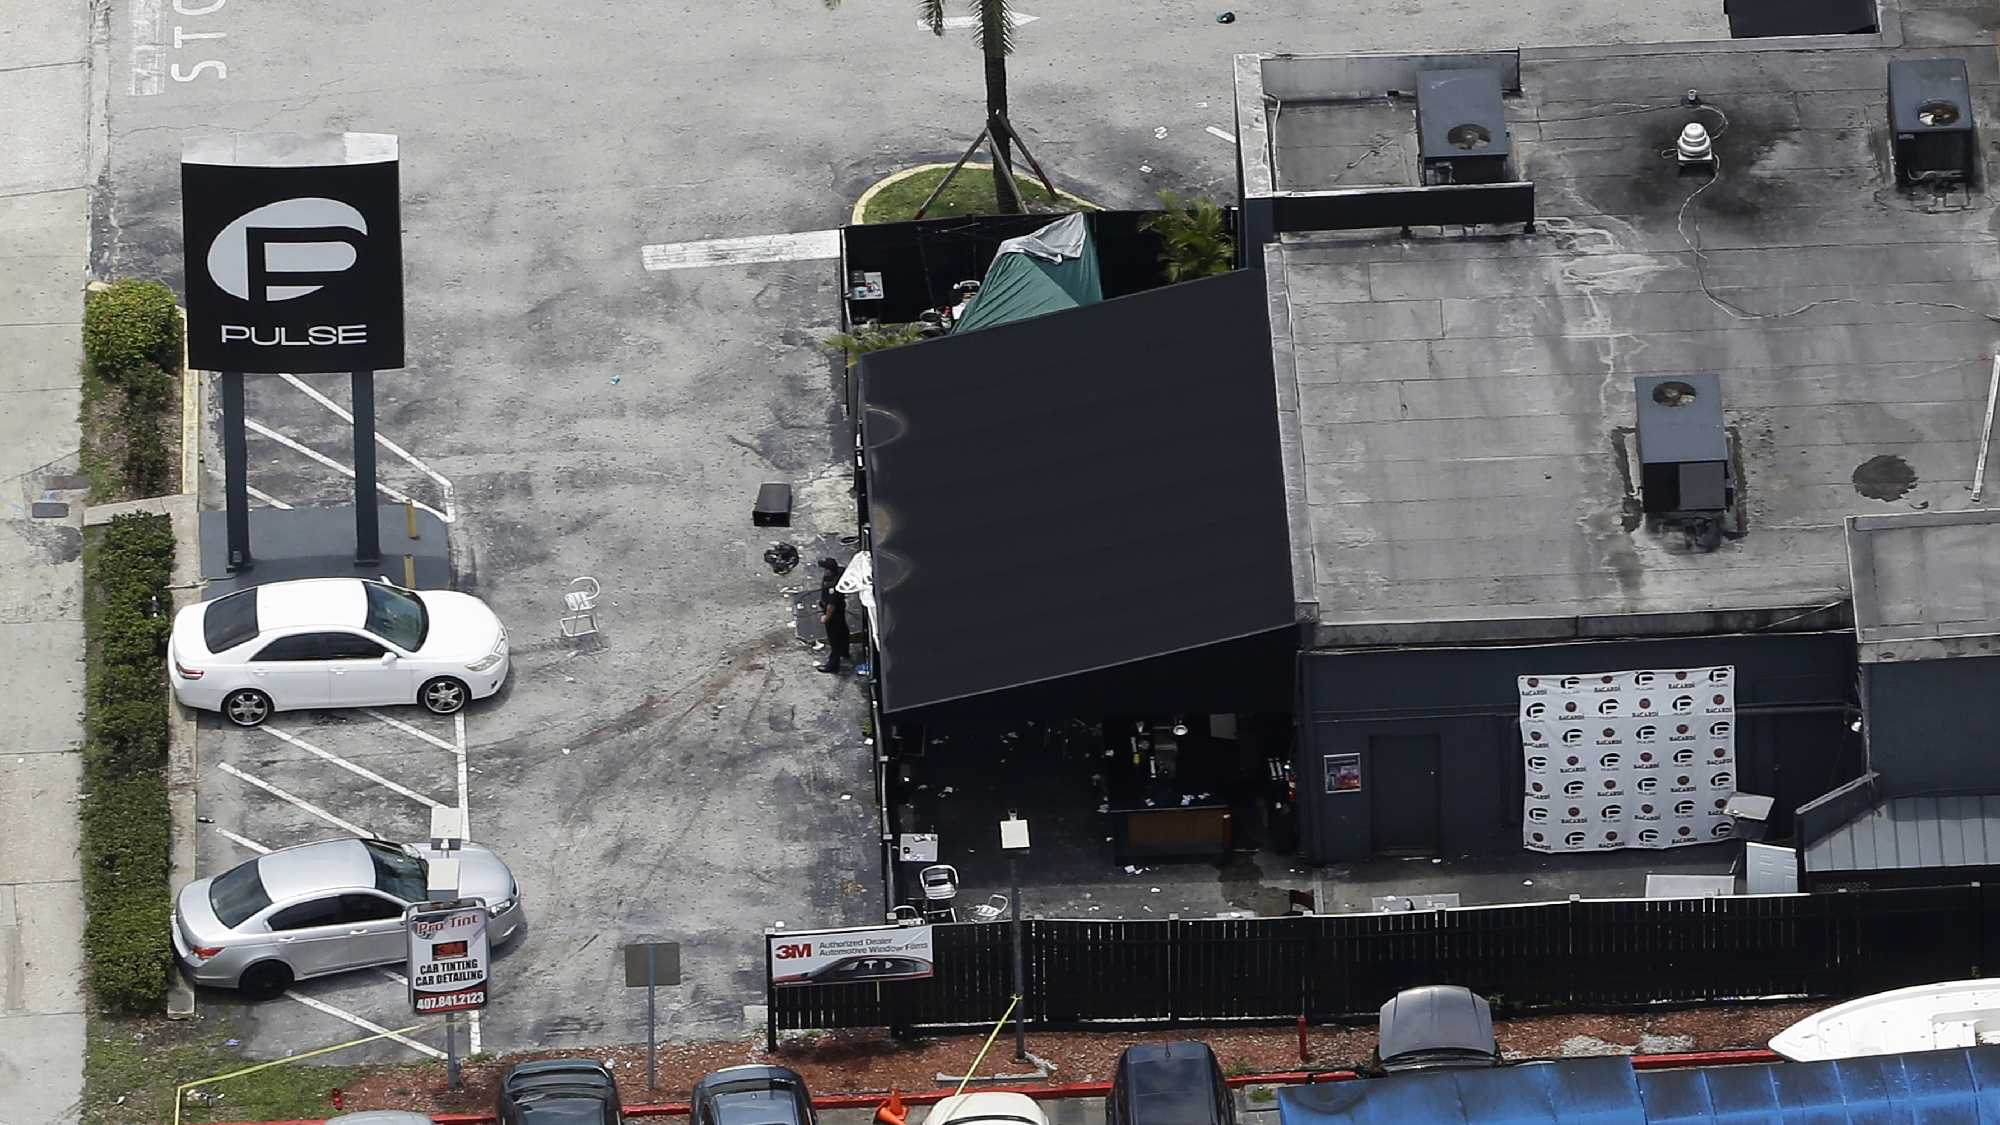 This photo shows the Pulse nightclub following a fatal shooting Sunday, June 12, 2016, in Orlando, Fla.